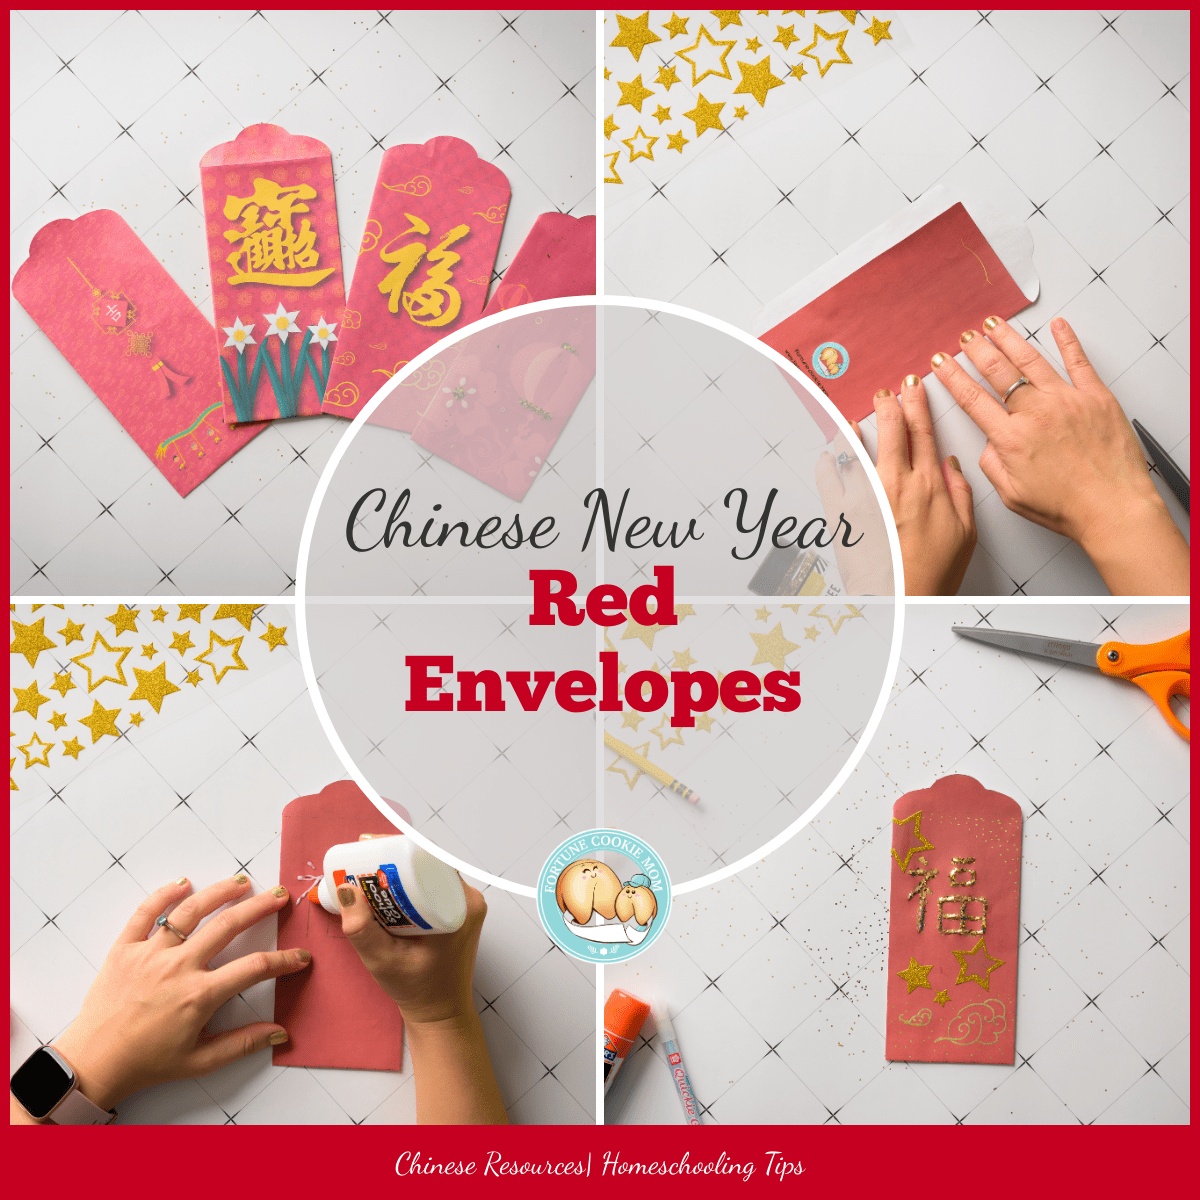 DIY Chinese New Year Red Envelopes like a Pro